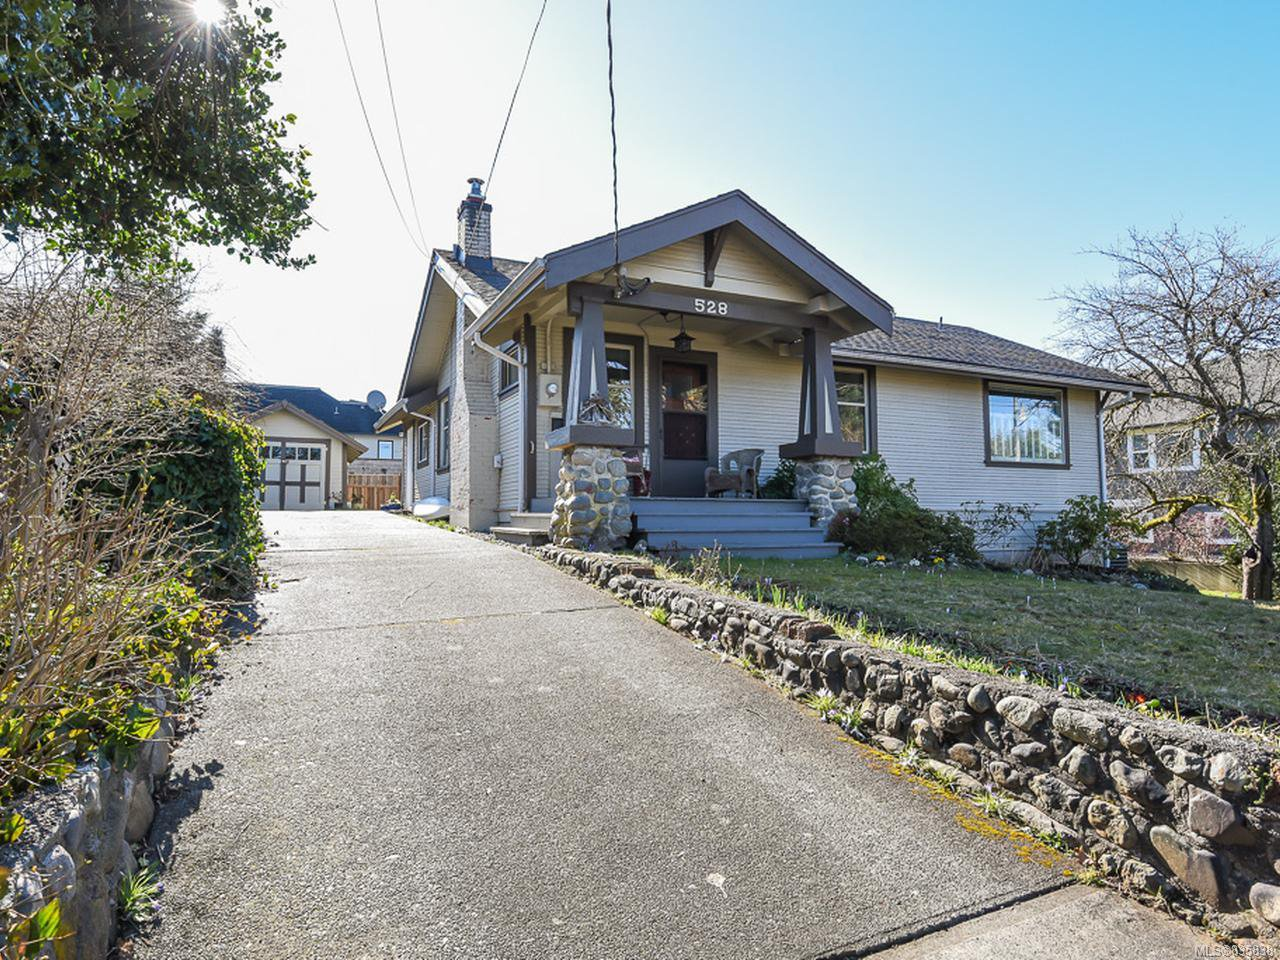 Main Photo: 528 3rd St in COURTENAY: CV Courtenay City House for sale (Comox Valley)  : MLS®# 835838